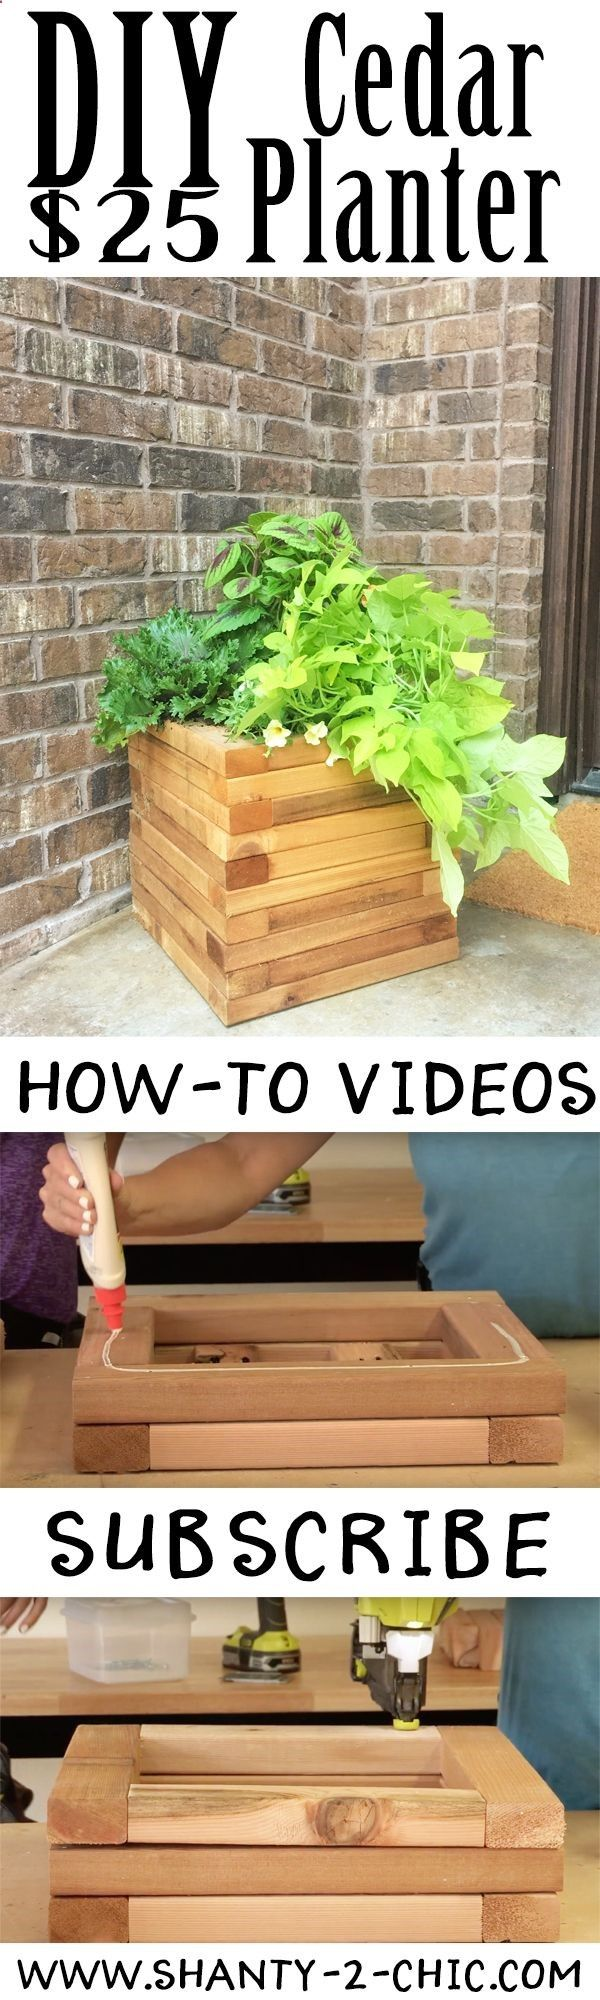 Wood Profit - Woodworking - Build this DIY Cedar planter with only 6 boards! Perfect beginner project and perfect for your fall porch! Get the free plans and how-to video at www.shanty-2-chic... Discover How You Can Start A Woodworking Business From Home Easily in 7 Days With NO Capital Needed!